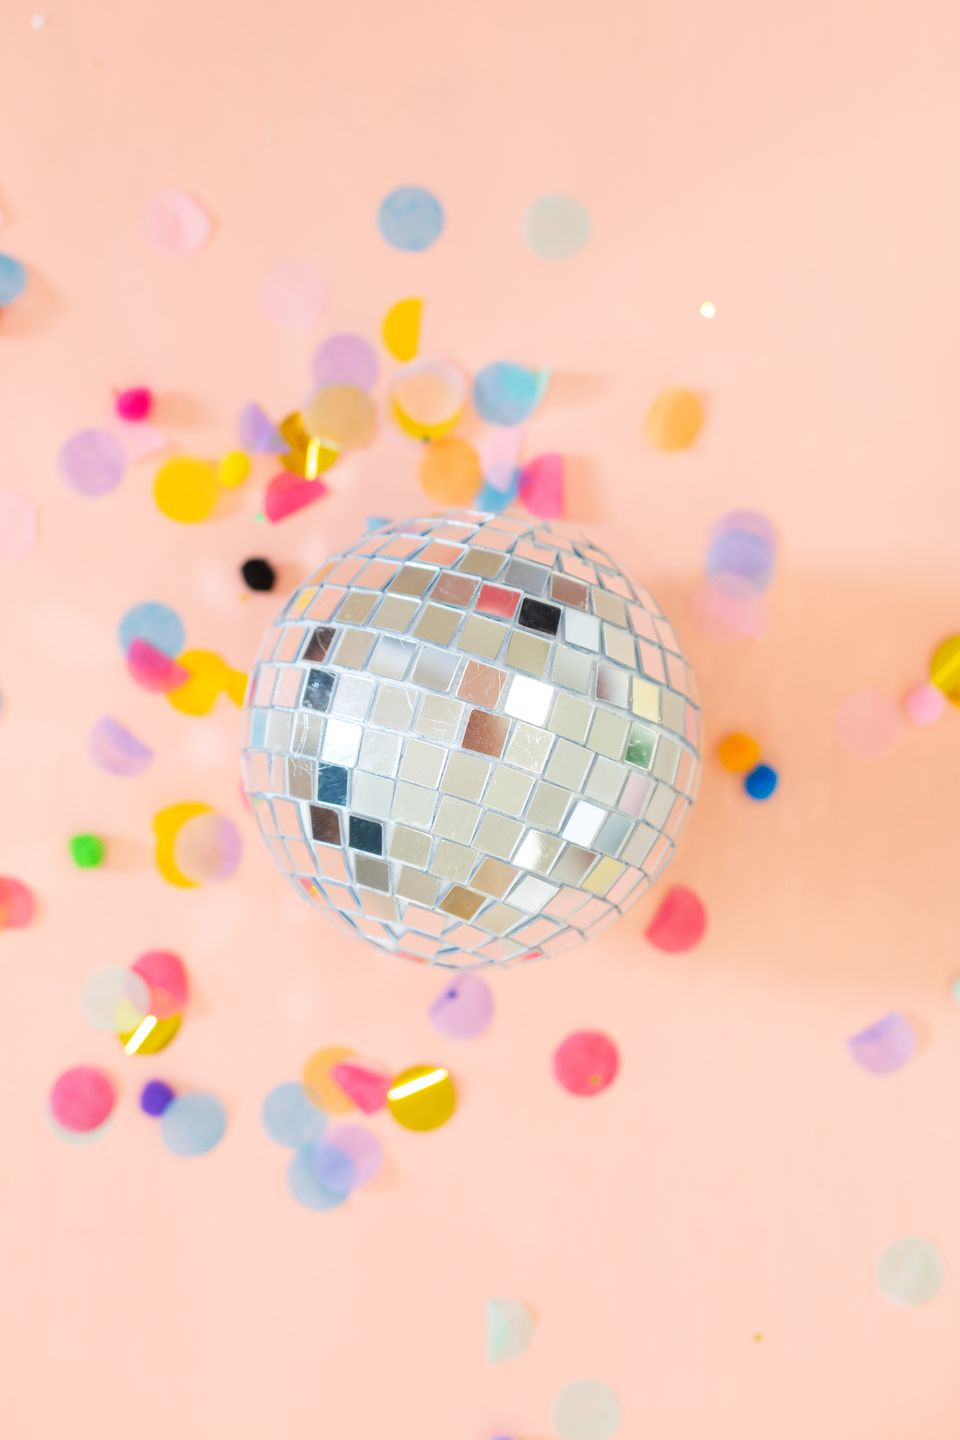 DIY disco ball on pink background with confetti